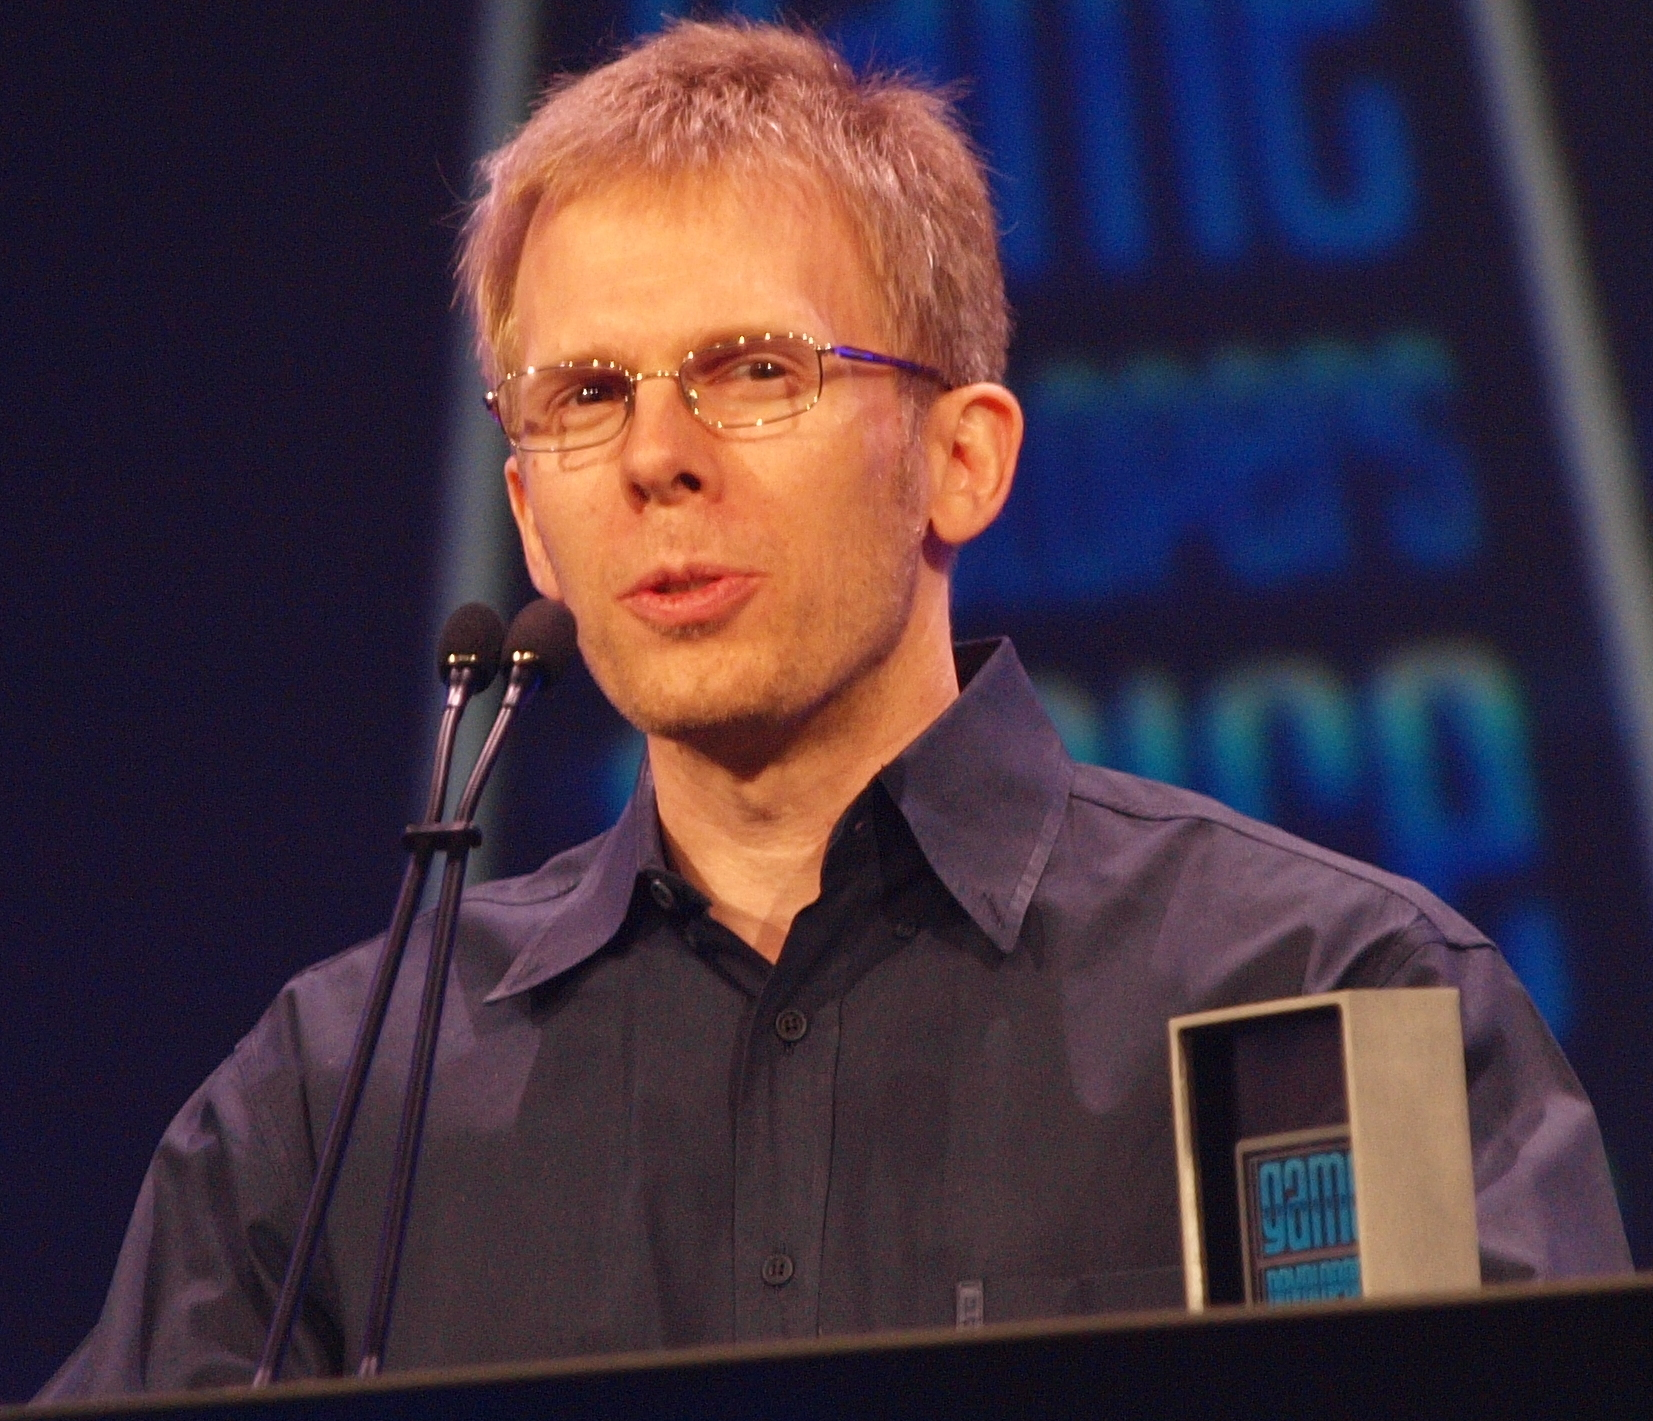 The 49-year old son of father (?) and mother(?) John Carmack in 2020 photo. John Carmack earned a  million dollar salary - leaving the net worth at  million in 2020